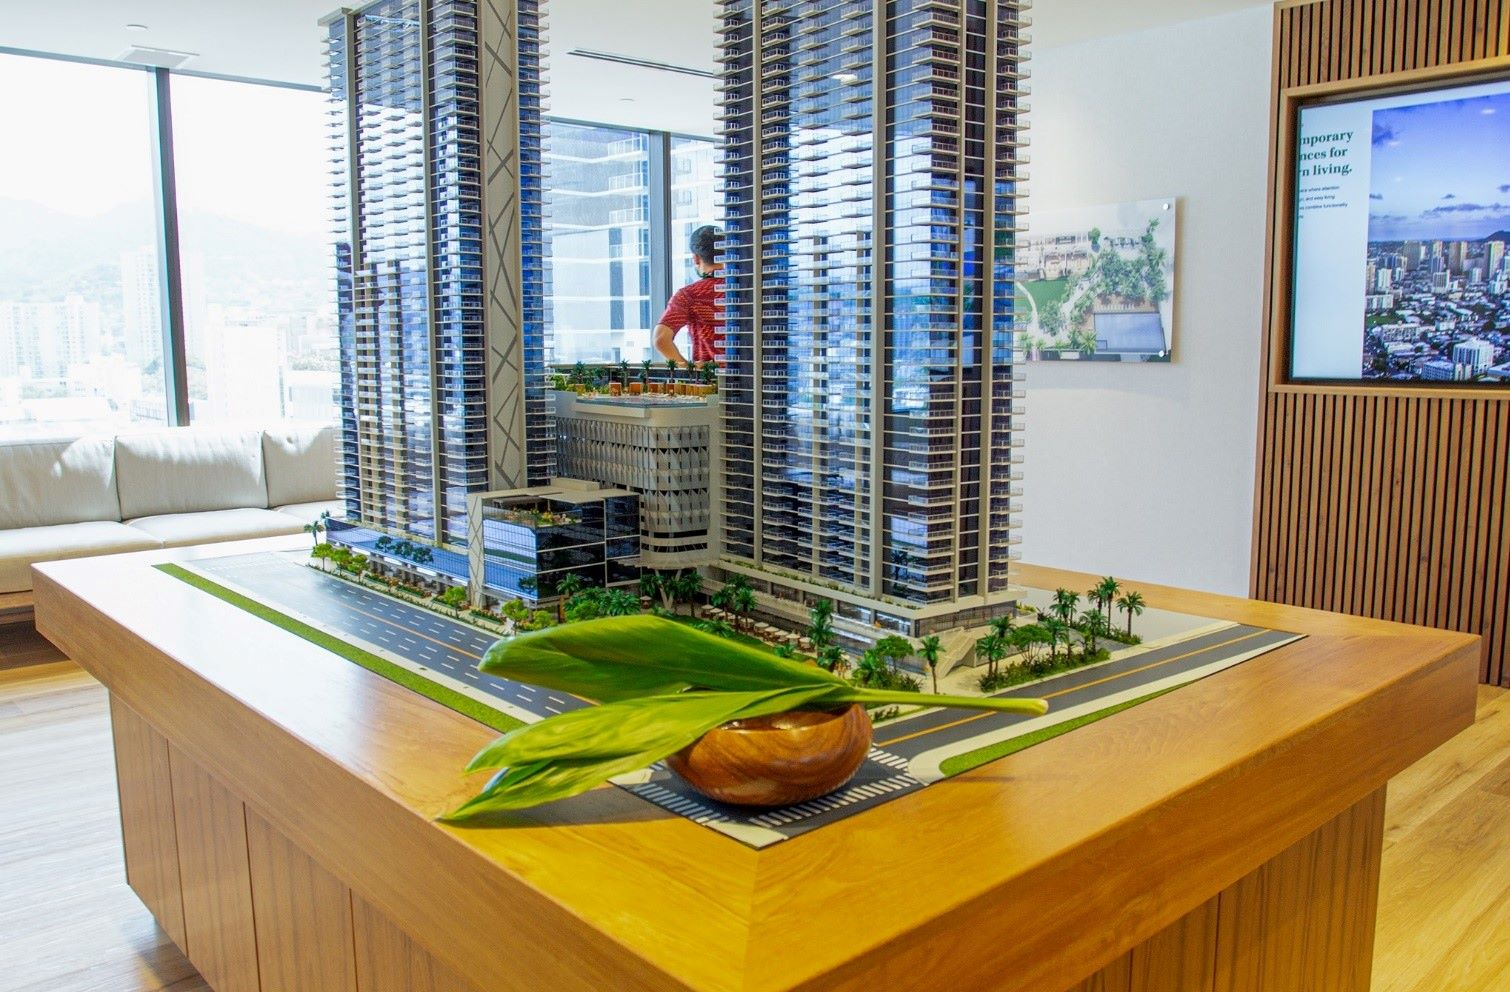 staff work on a model of complex building in Hawaii downtown